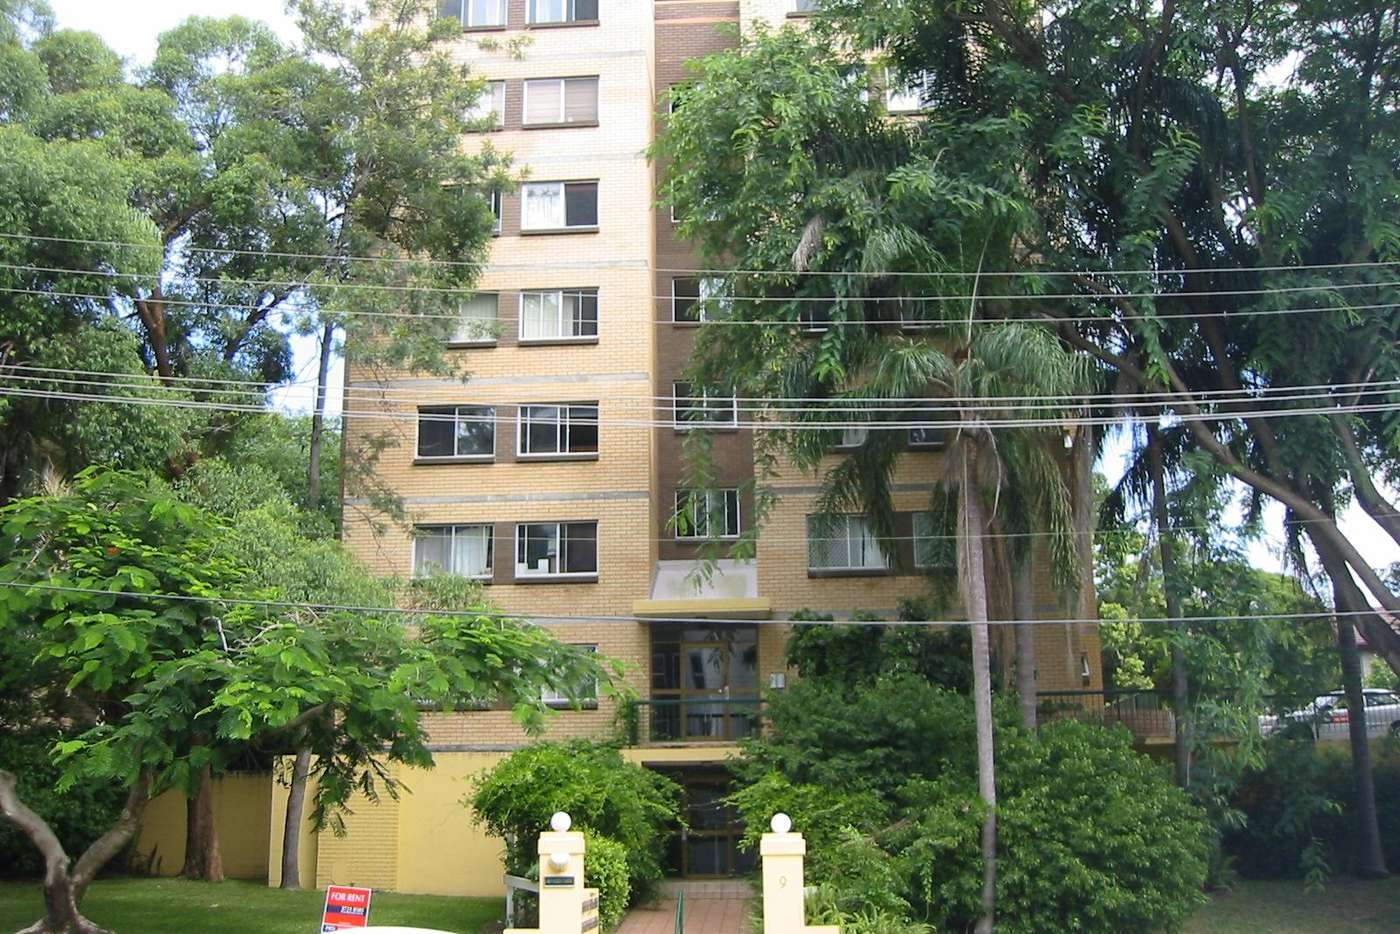 Main view of Homely apartment listing, 16/9 Dunmore Terrace, Auchenflower QLD 4066